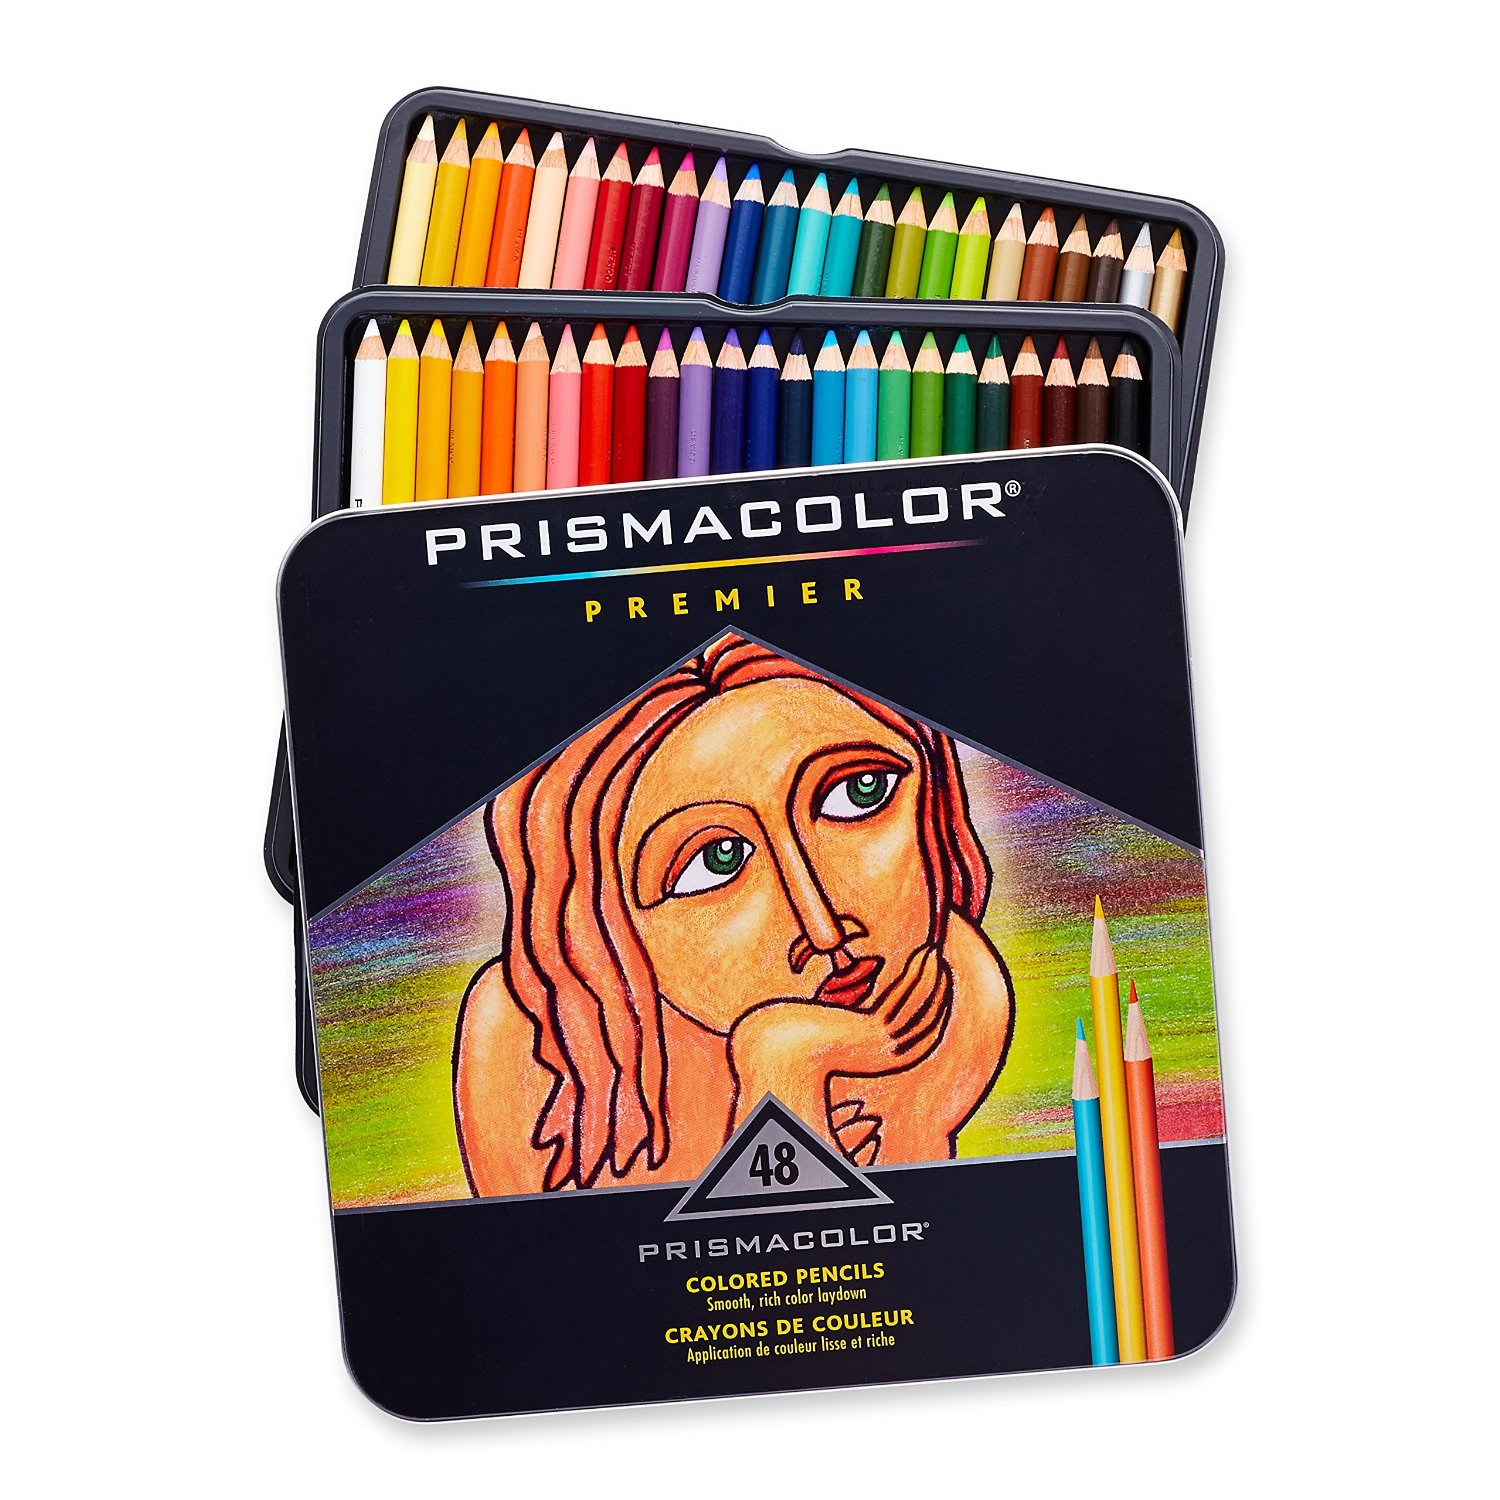 Prismacolor colored pencils are our favorites for young artiists